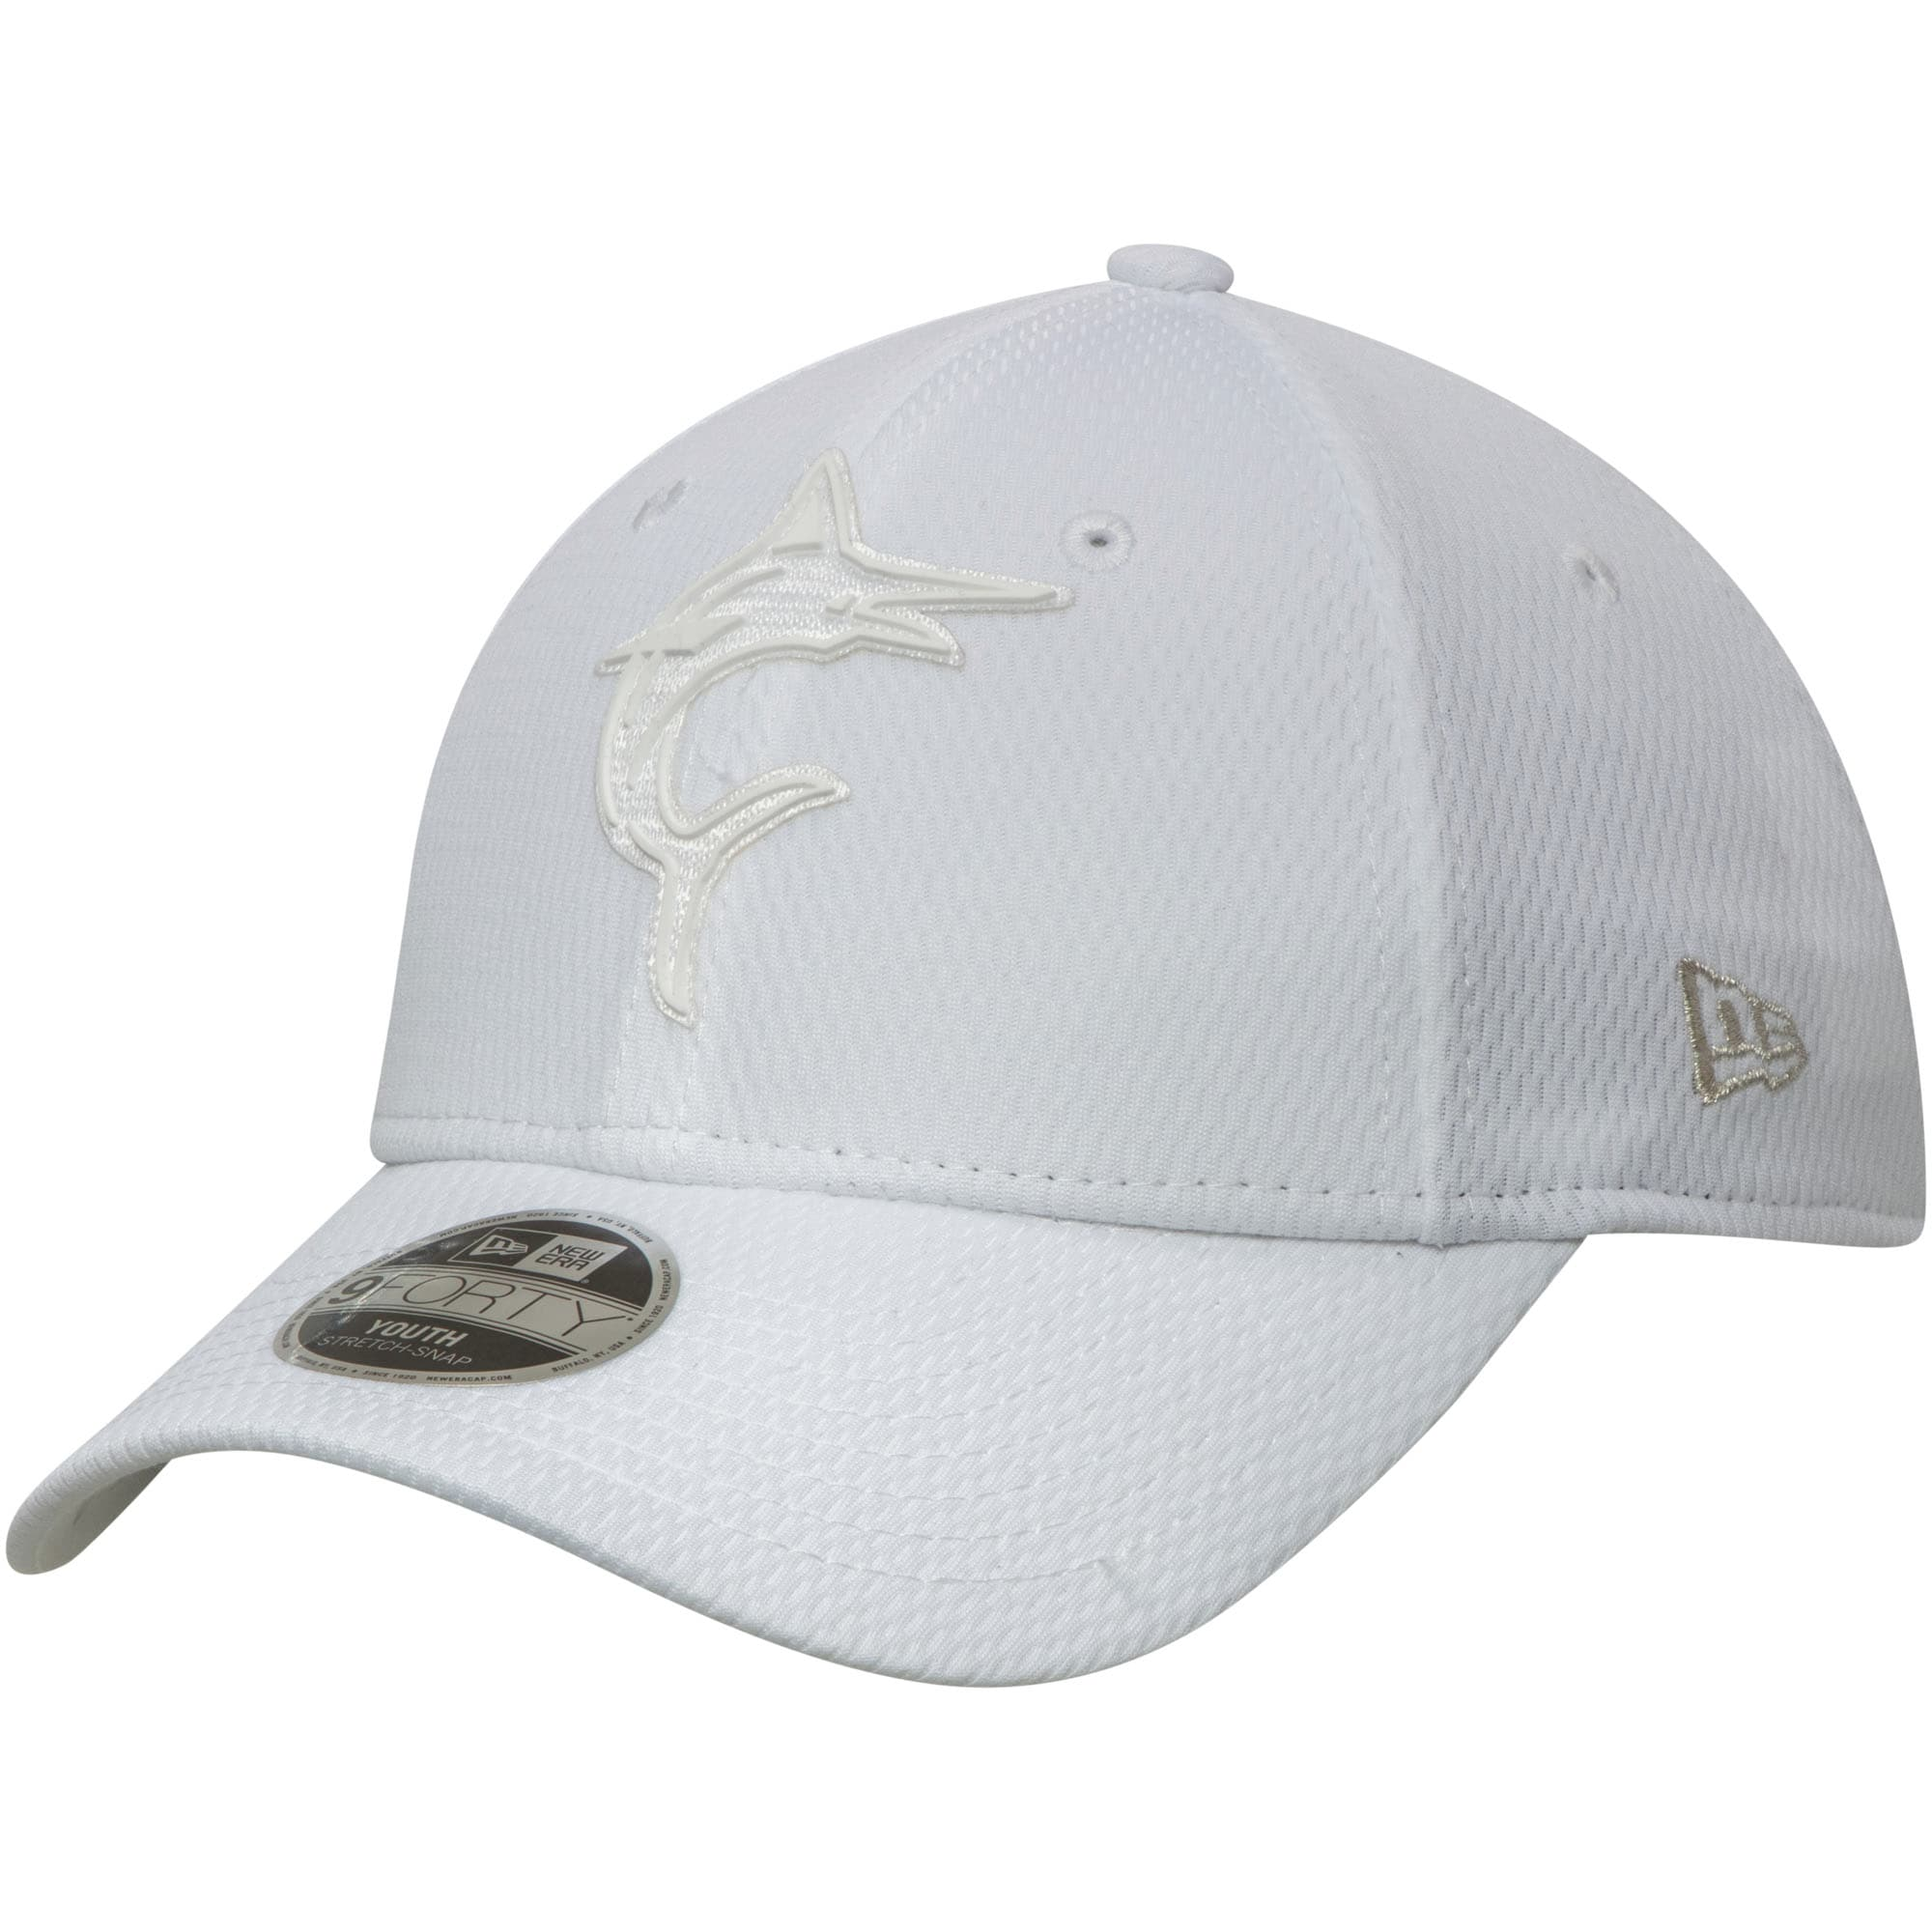 Miami Marlins New Era Youth 2019 Players' Weekend 9FORTY Adjustable Hat - White